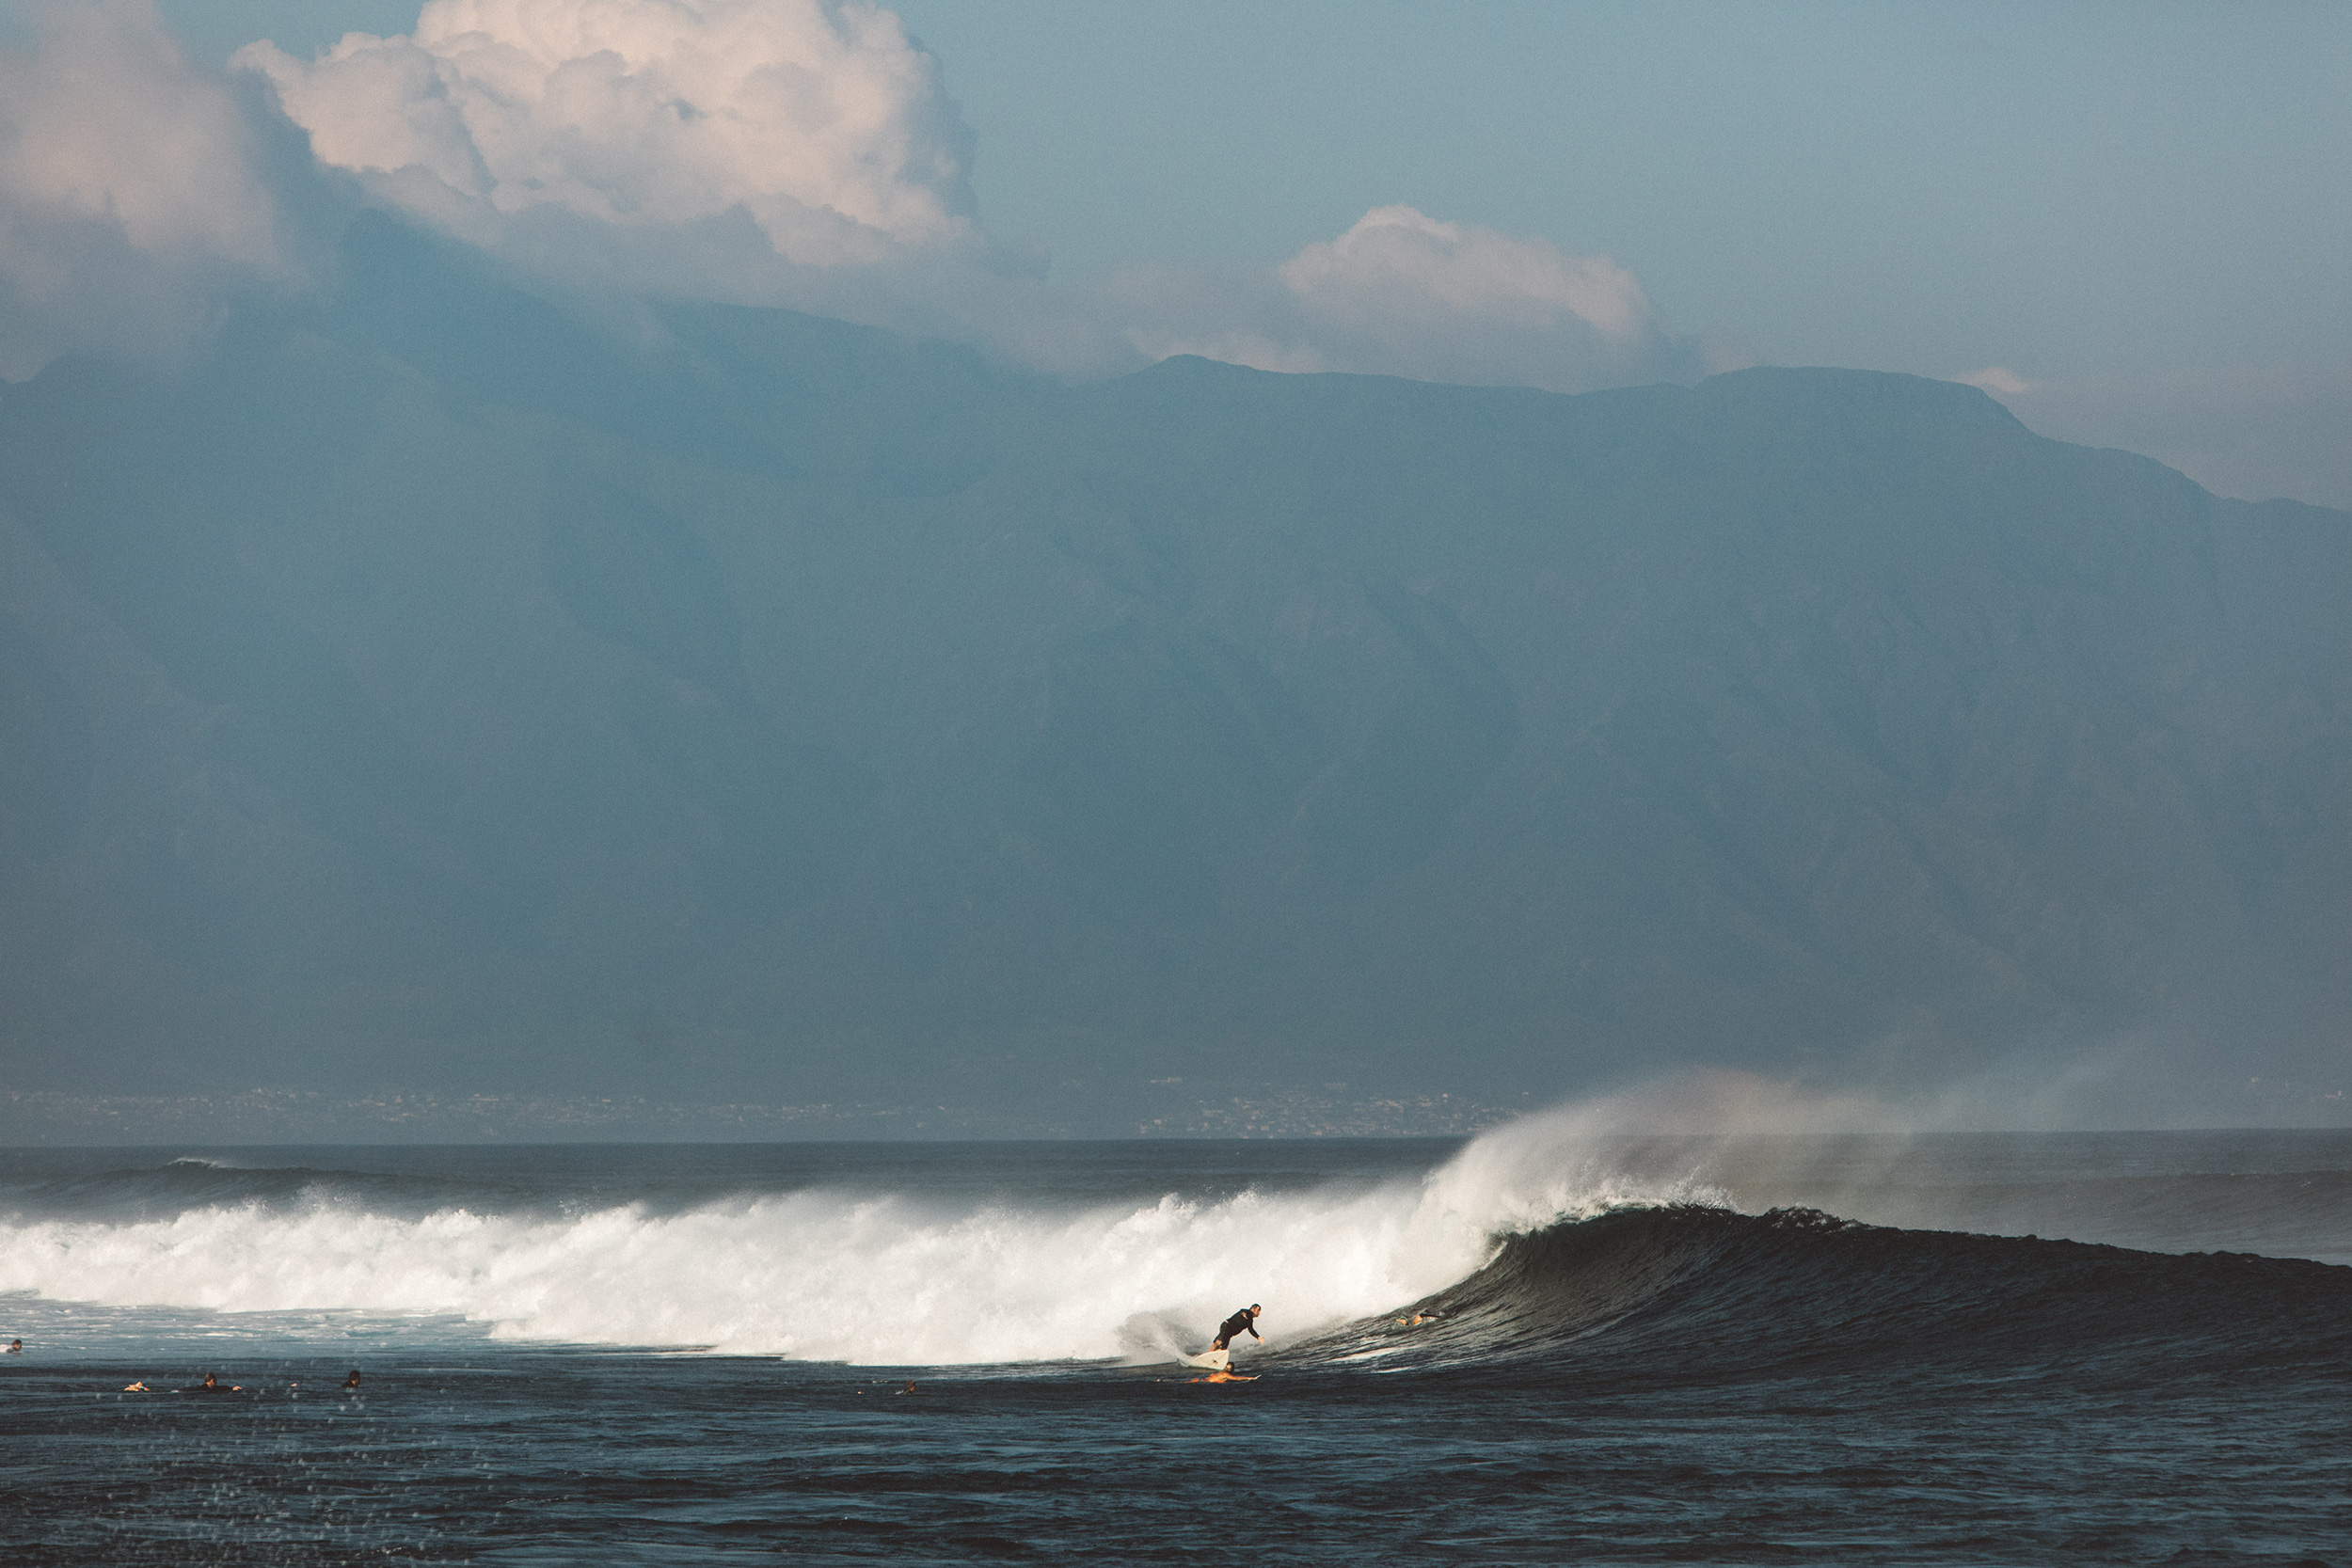 one of a set travelling around Maui one the Hawaiian islands road tripping photography of huge waves at Maui's famous Jaws    peahi big wave surfer dramatic coast line beautiful beaches on maui perfect waves freediving turtles living the wanderlust dream of travel and exploration